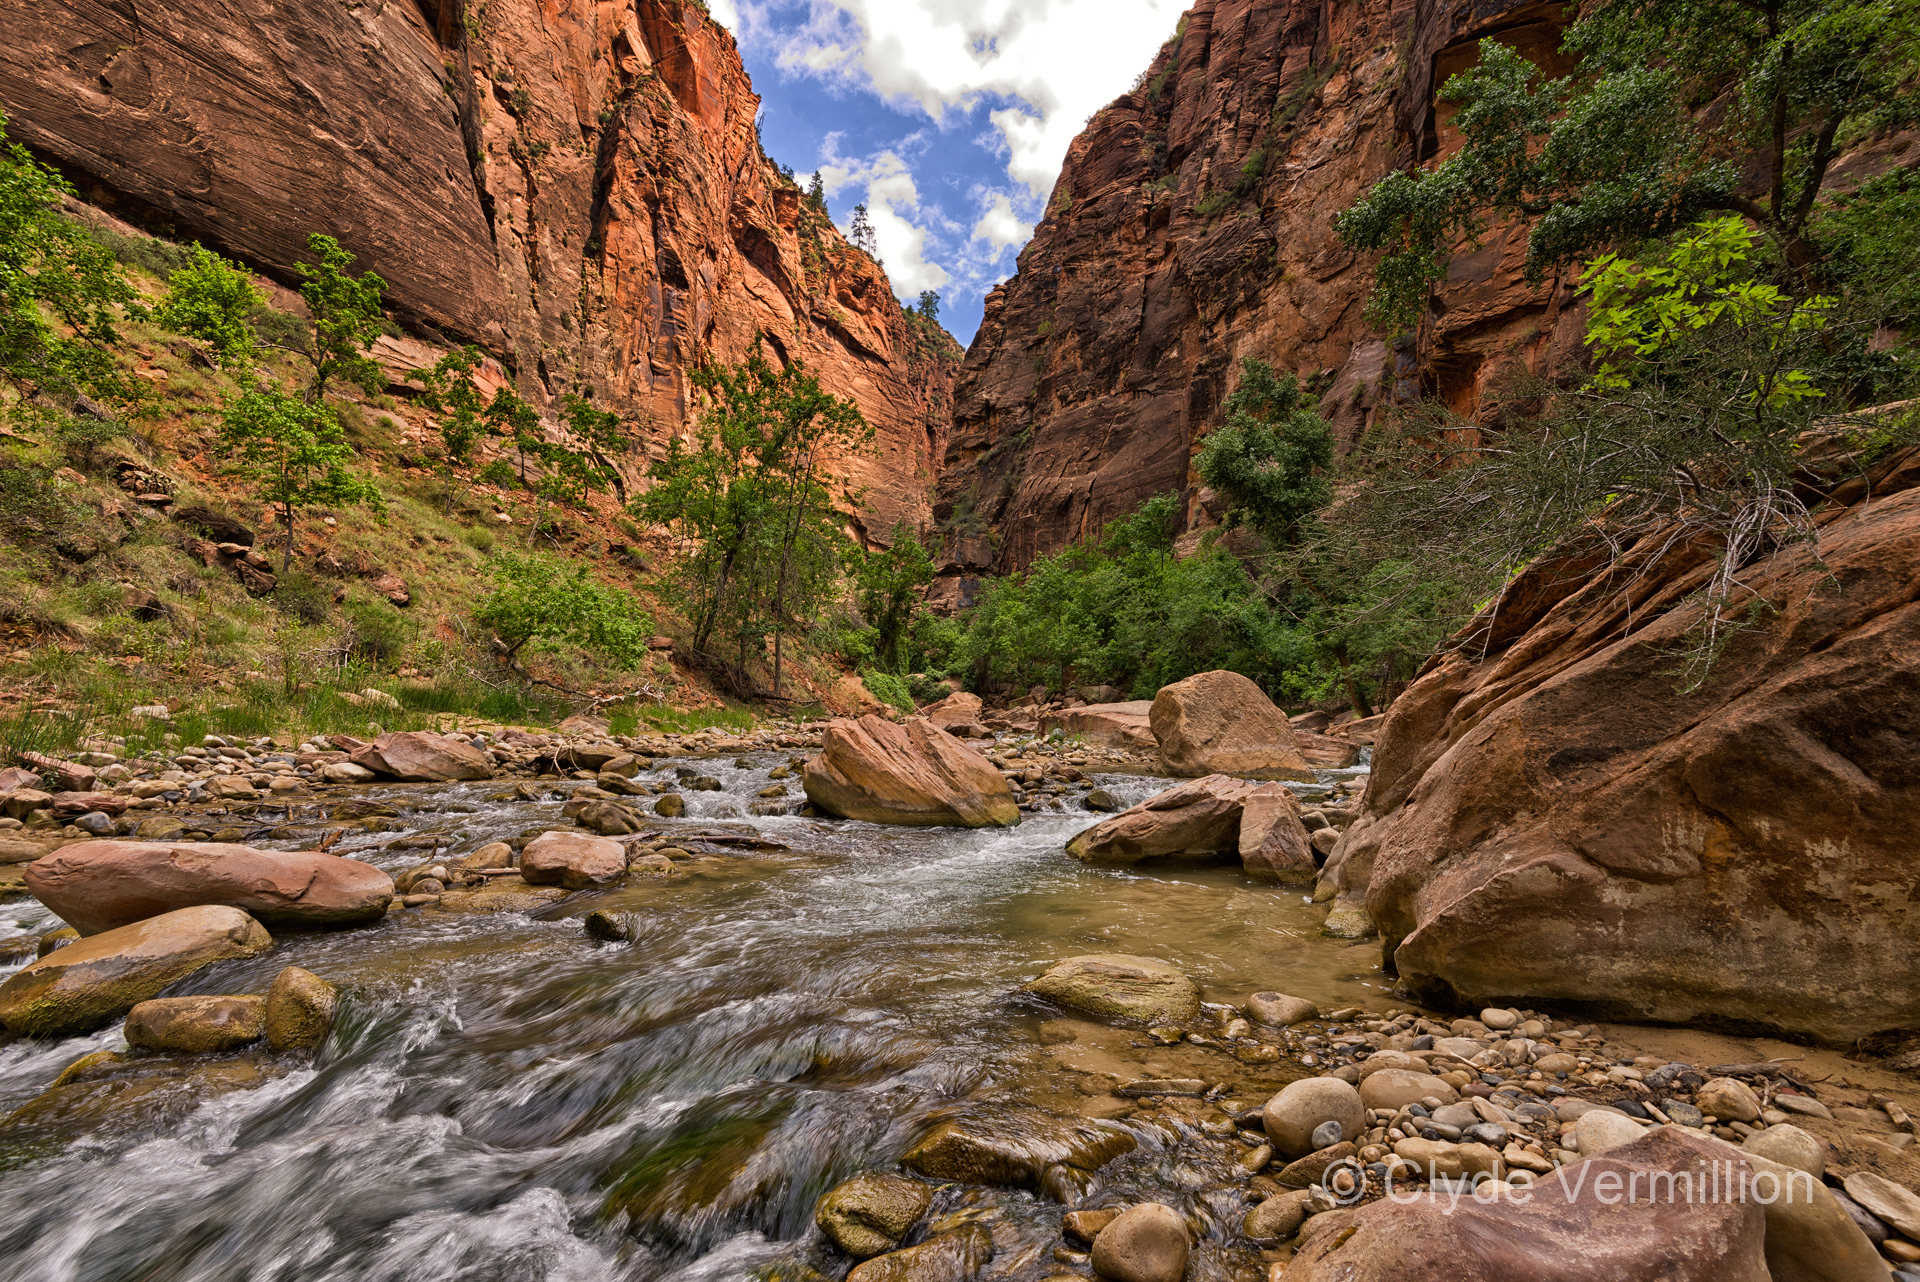 The_narrows_zion_nat._park_hb4oyw